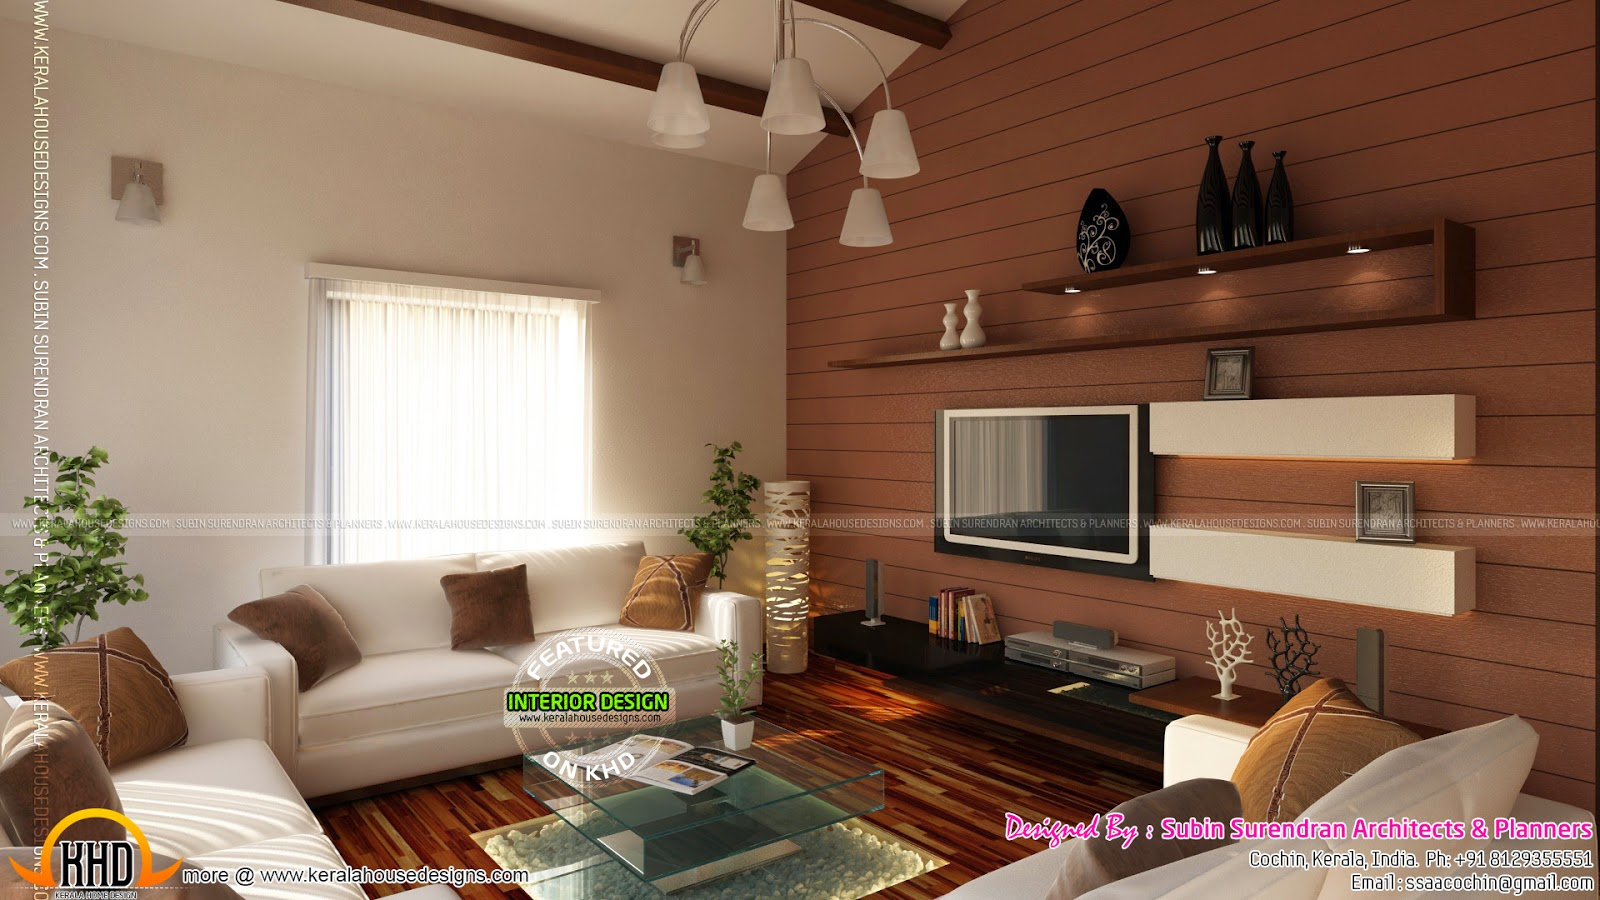 News and article online Design 2 decor